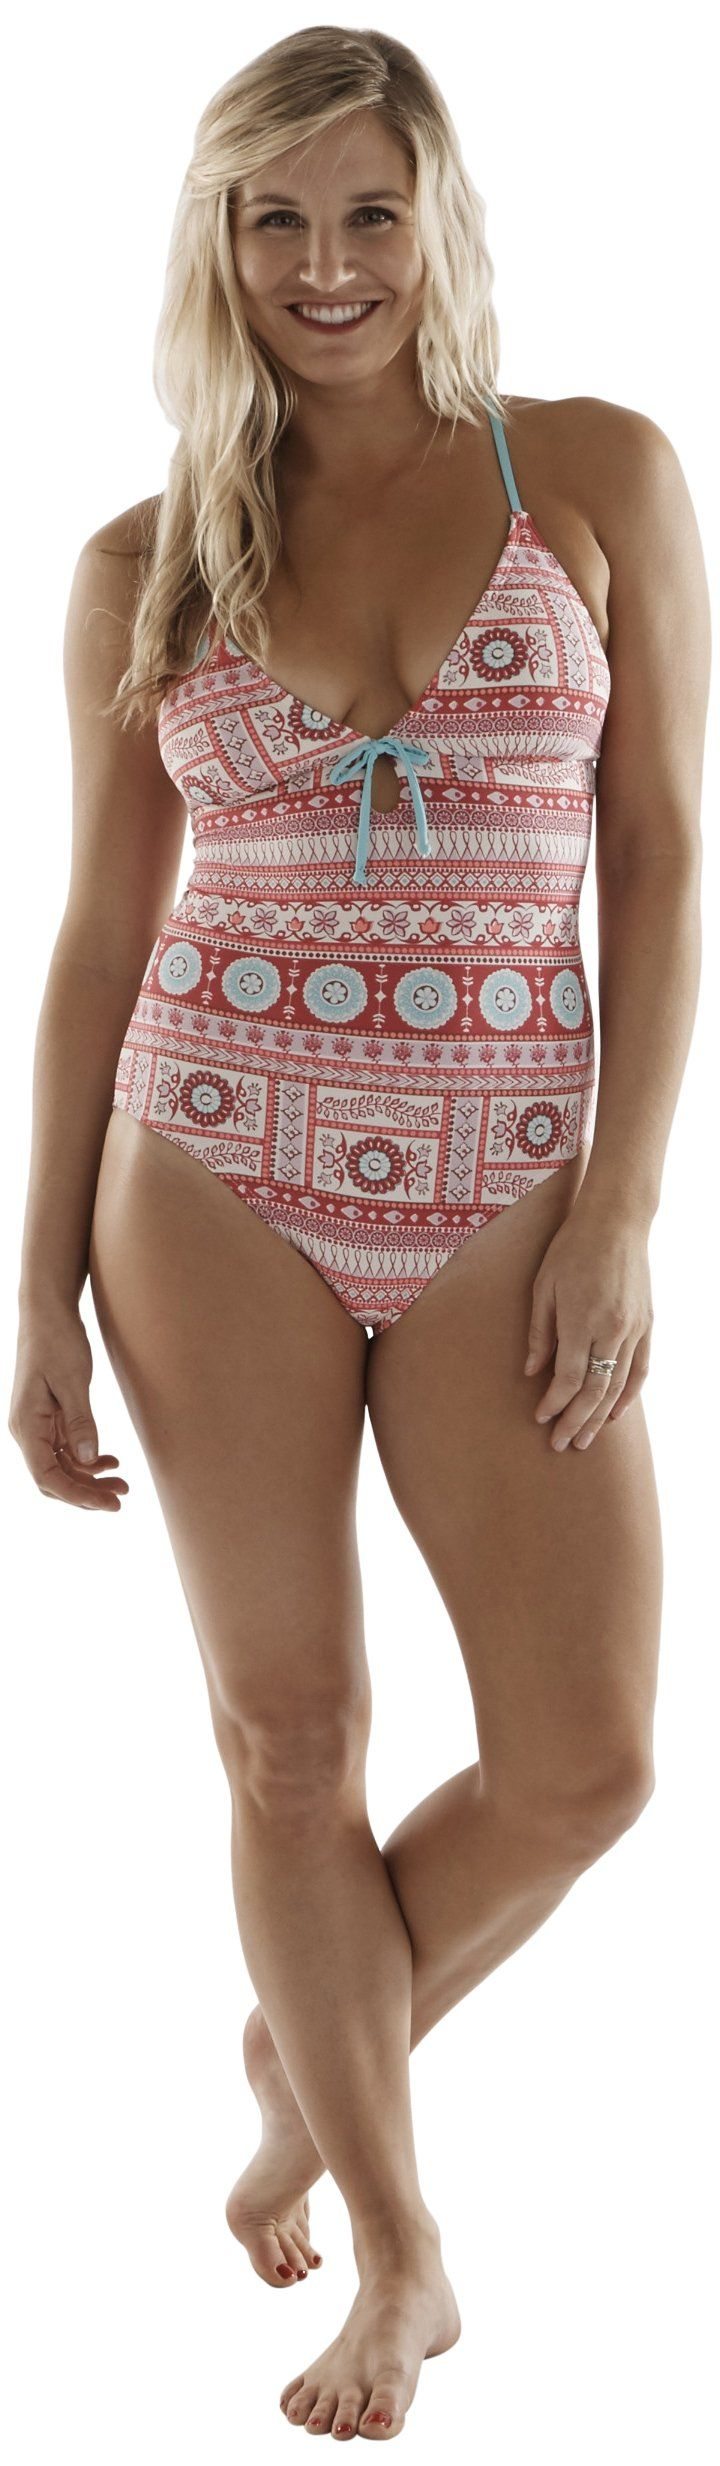 Carve Designs Women's Nosara Full Piece, Large, Parisio. One-piece swimsuit with triangle cups featuring cutout with bow. Crisscross back straps with tie.